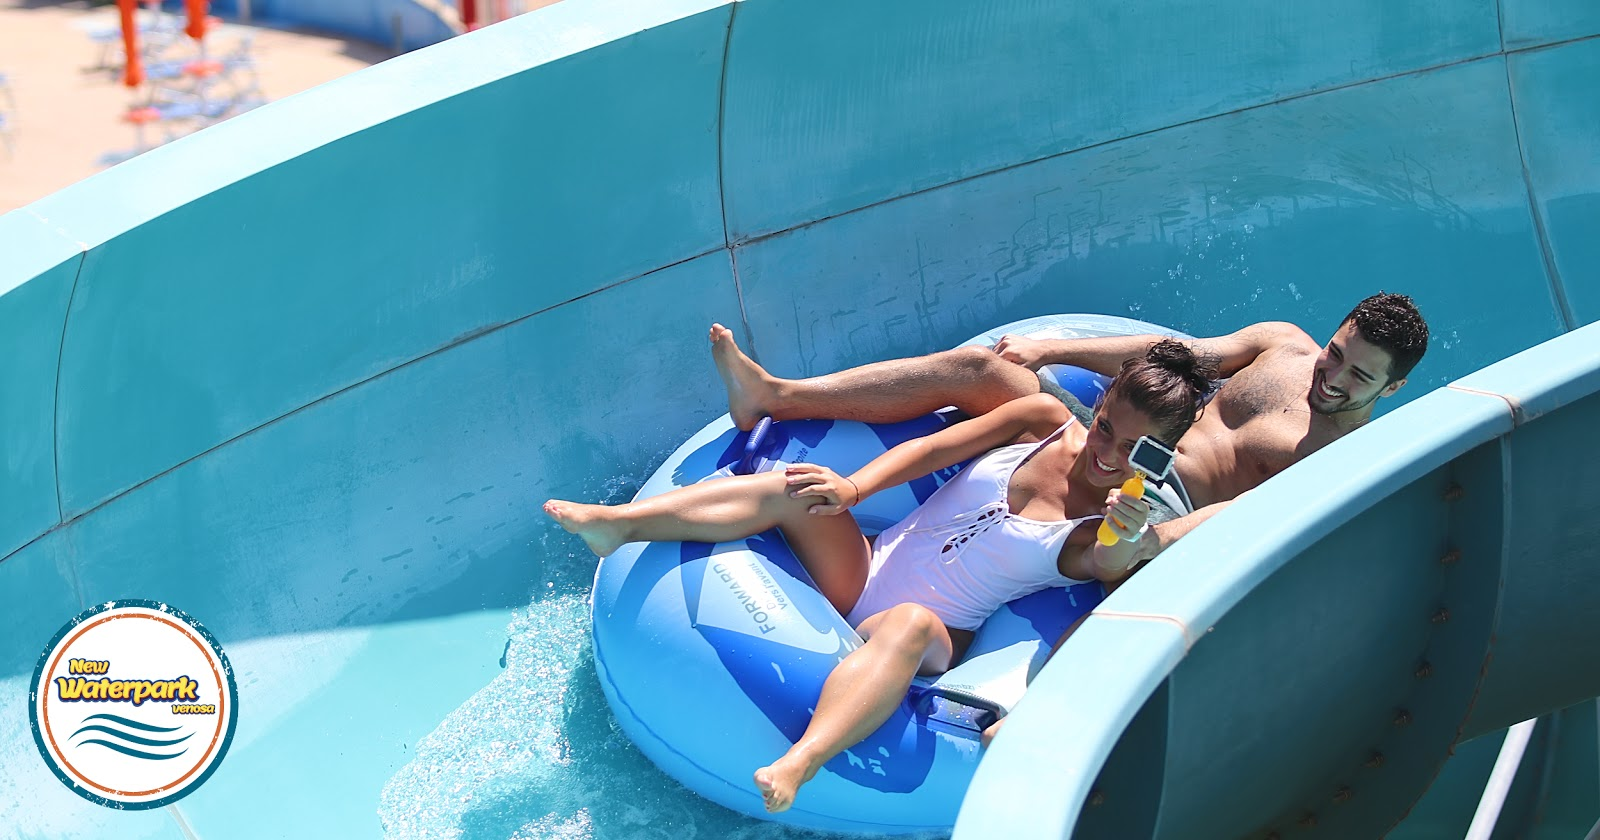 Waves Waterpark - photo